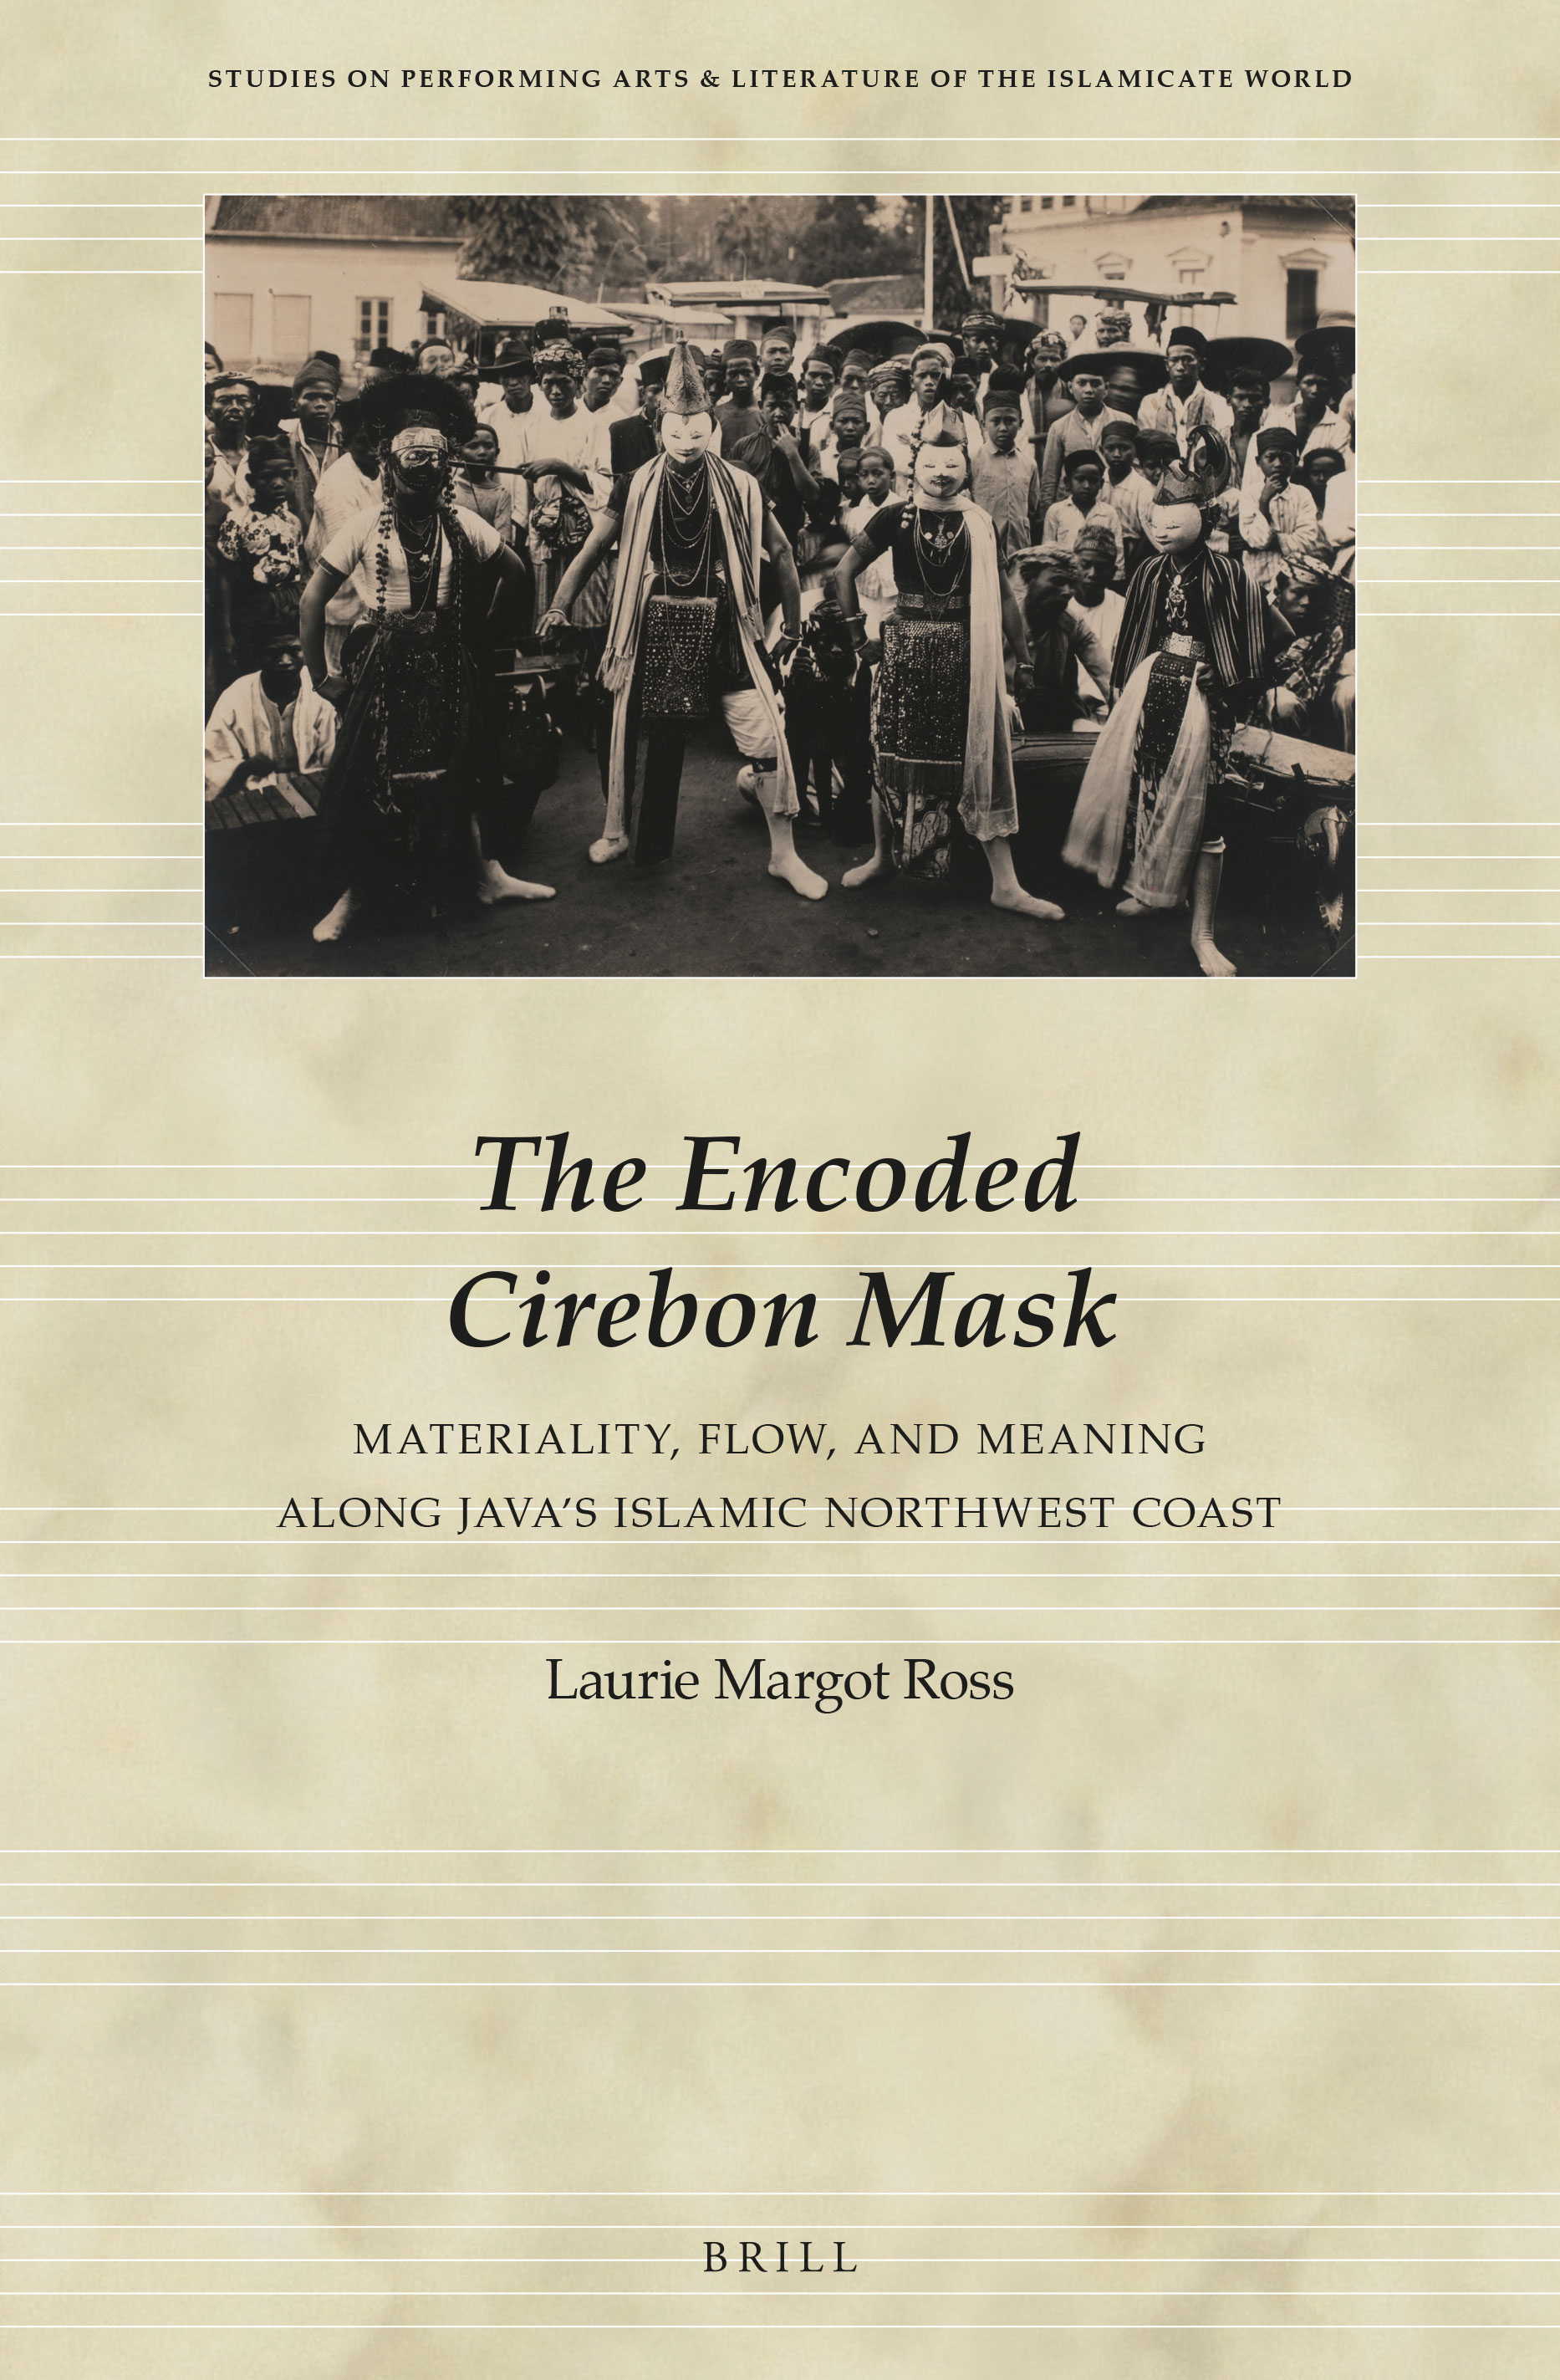 THE ENCODED CIREBON MASK: MATERIALITY, FLOW, AND MEANING ALONG JAVA'S ISLAMIC NORTHWEST COAST